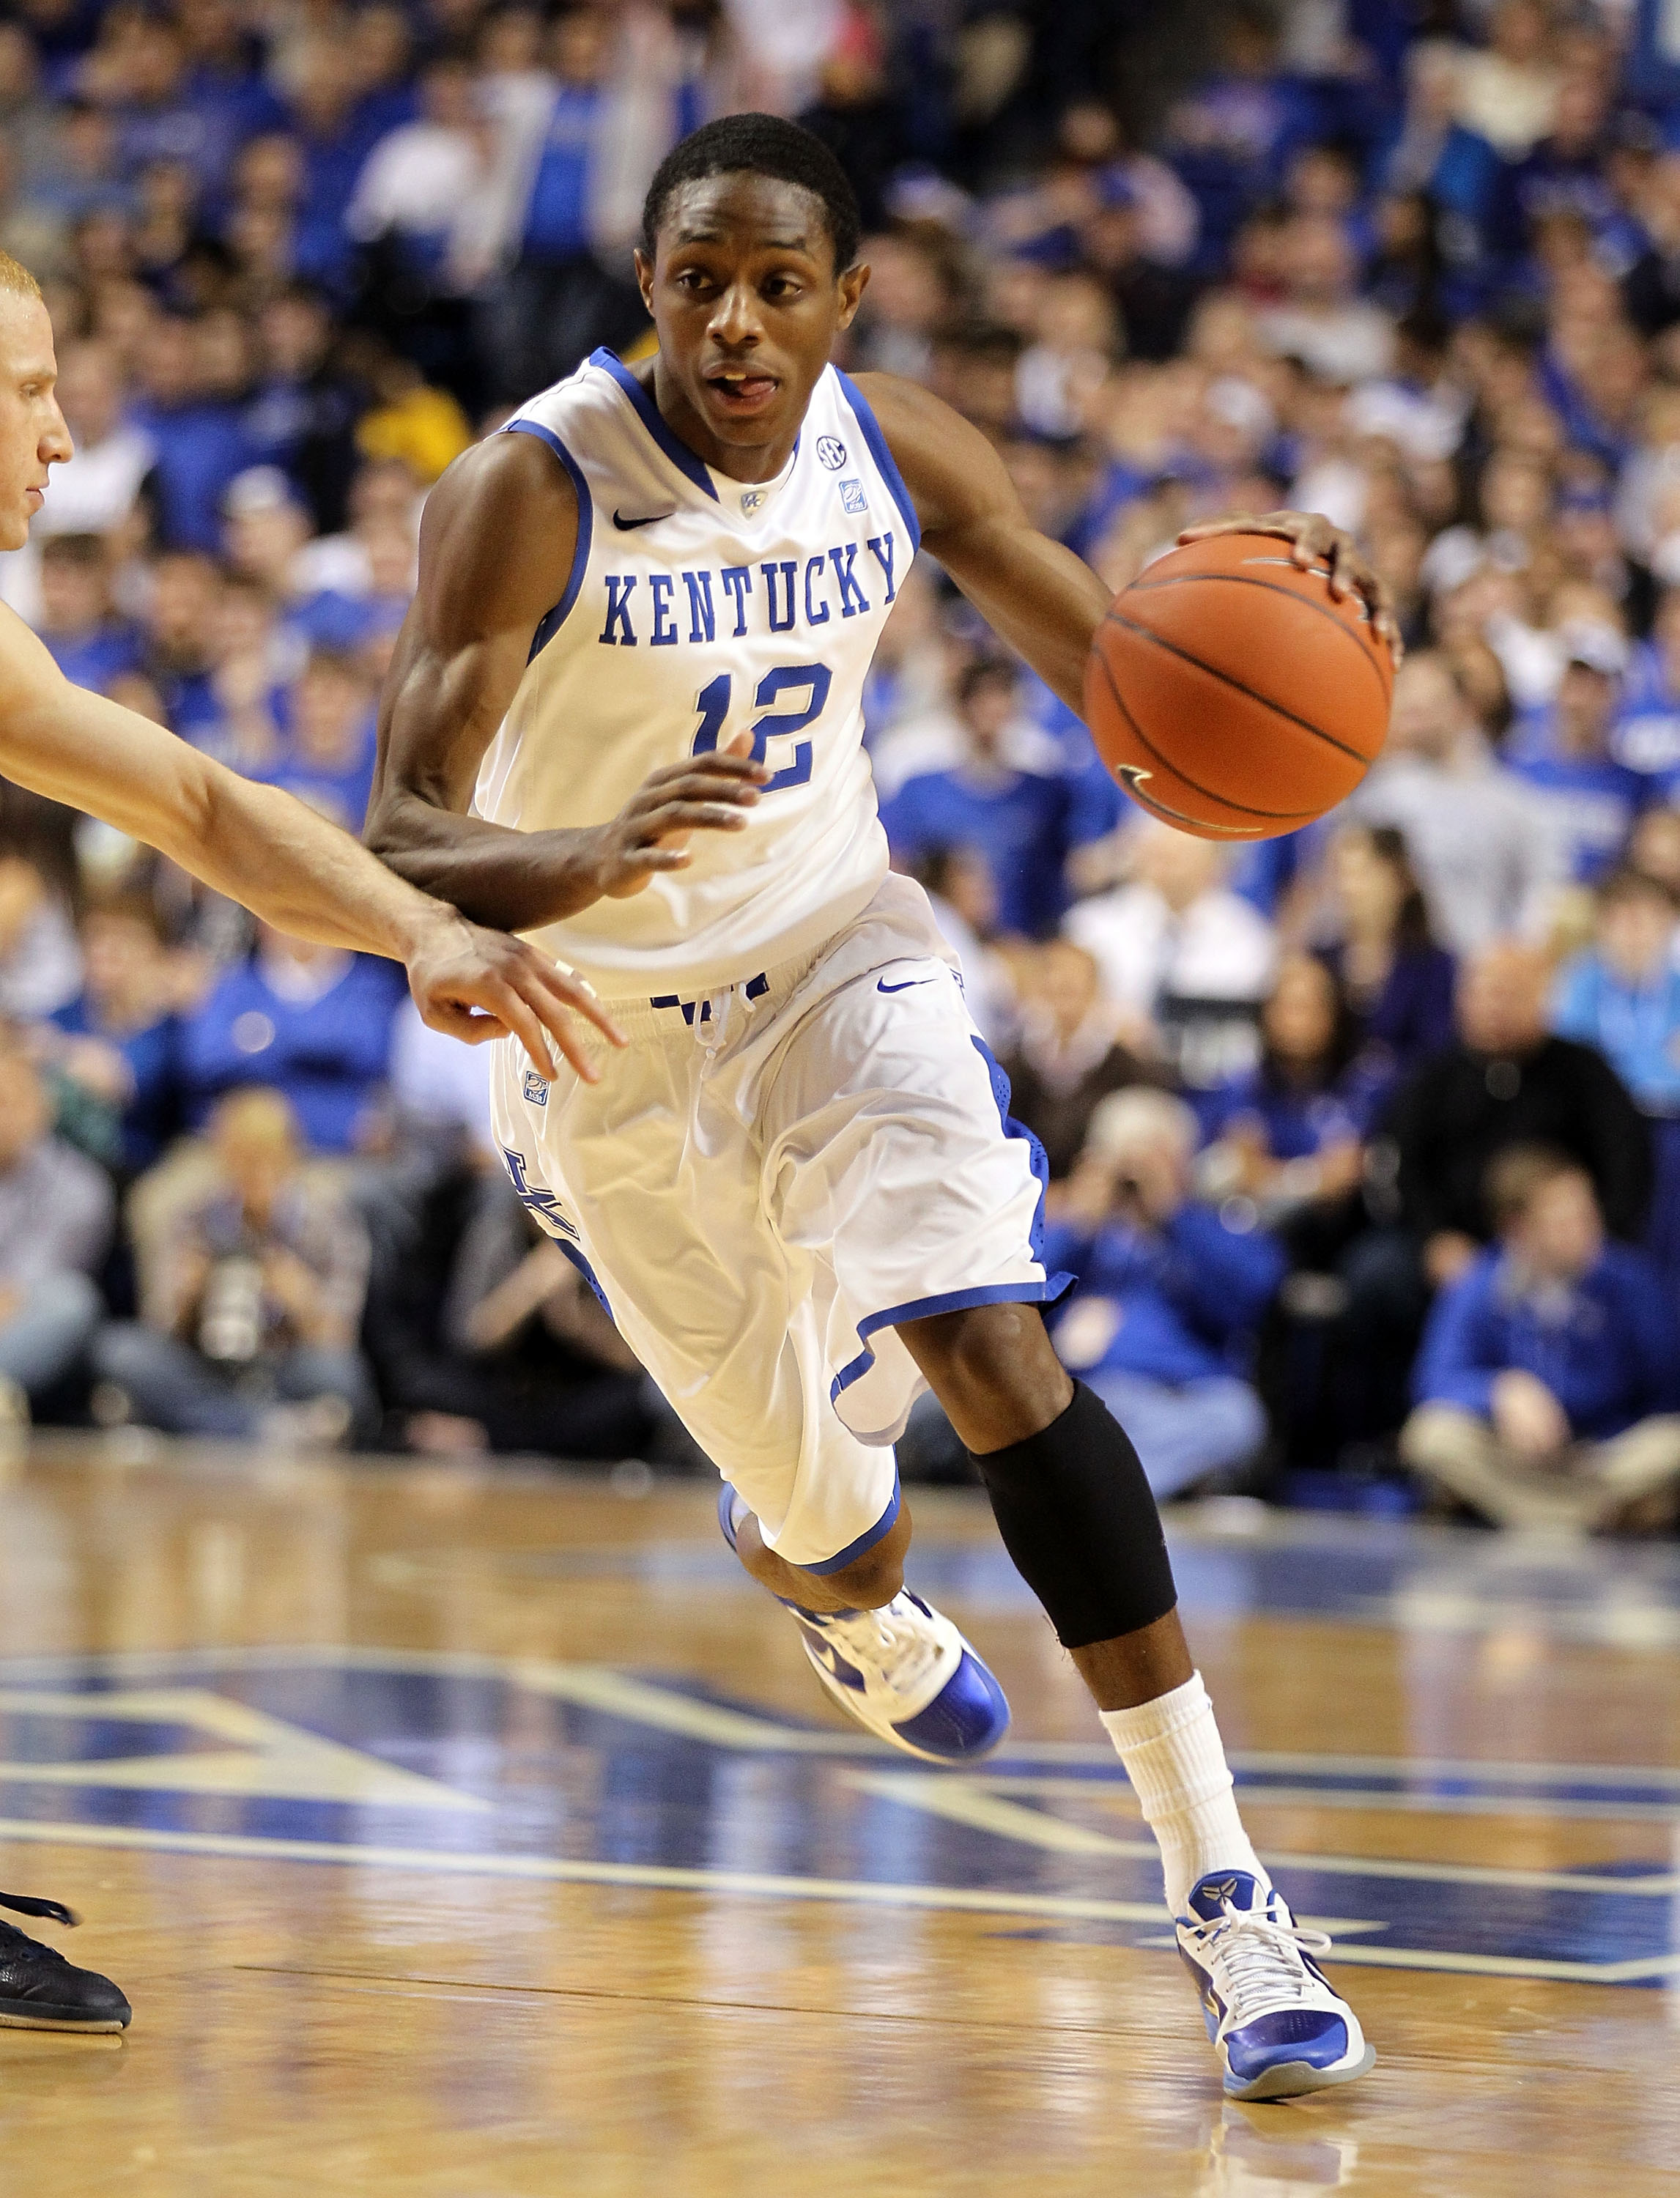 LEXINGTON, KY - JANUARY 03:  Brandon Knight #12 of the Kentucky Wildcats dribbles the ball during the game against the Penn Quakers at Rupp Arena on January 3, 2011 in Lexington, Kentucky.  Kentucky won 86-62.  (Photo by Andy Lyons/Getty Images)